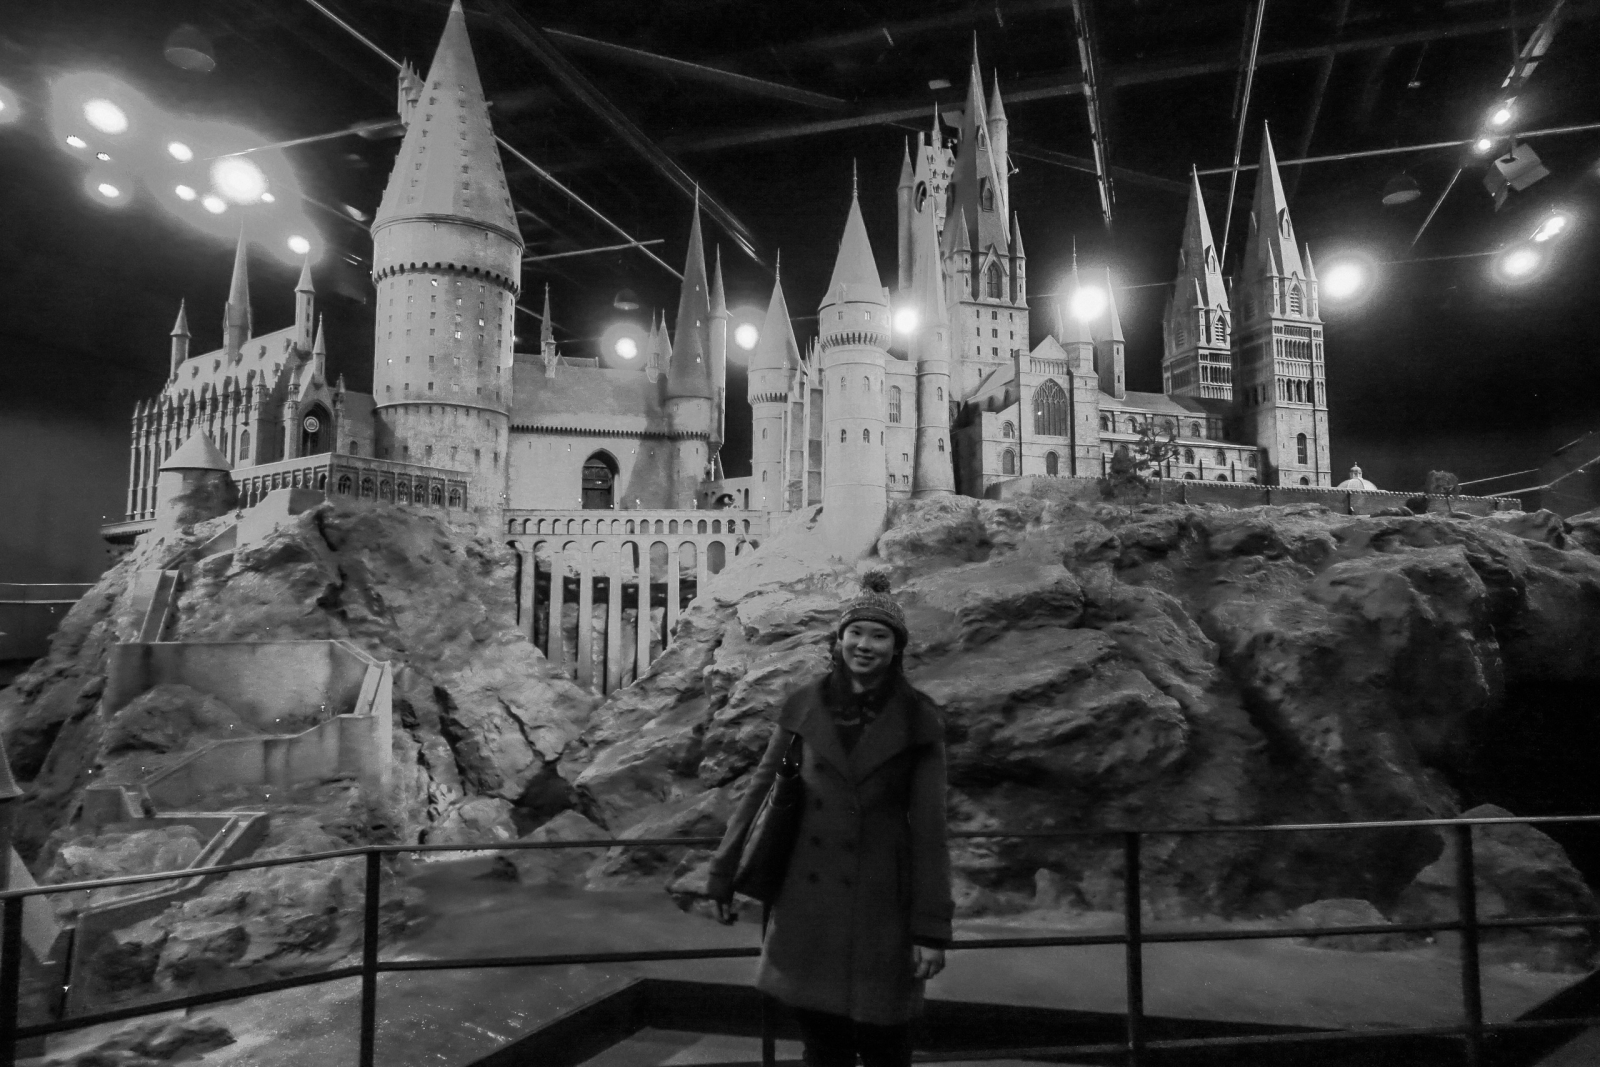 Me in front of Hogwarts scale model